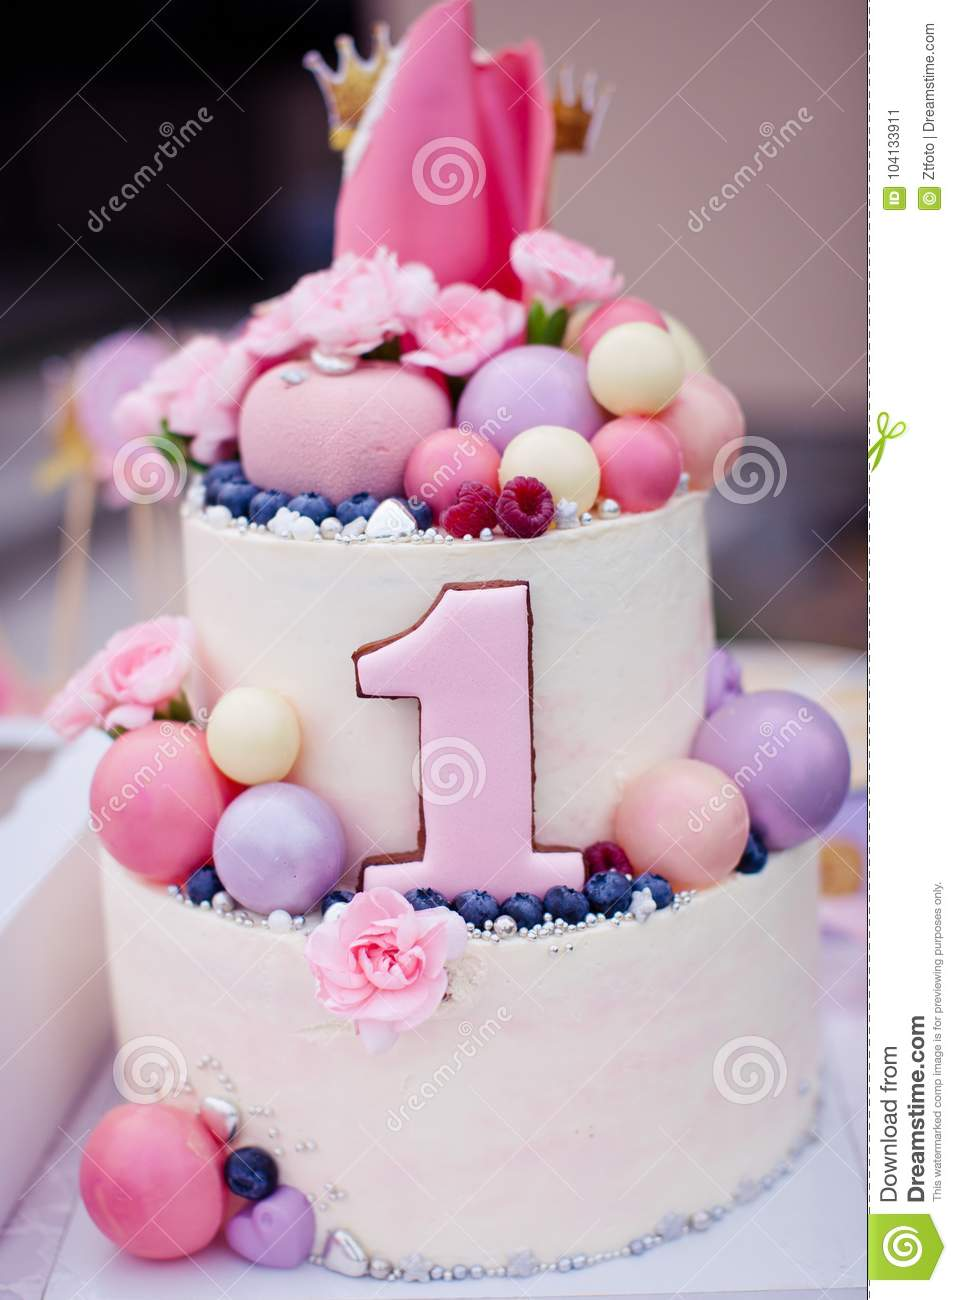 Cool Pink Cake For A Girl On The Birthday Of One Year Old Stock Image Funny Birthday Cards Online Alyptdamsfinfo